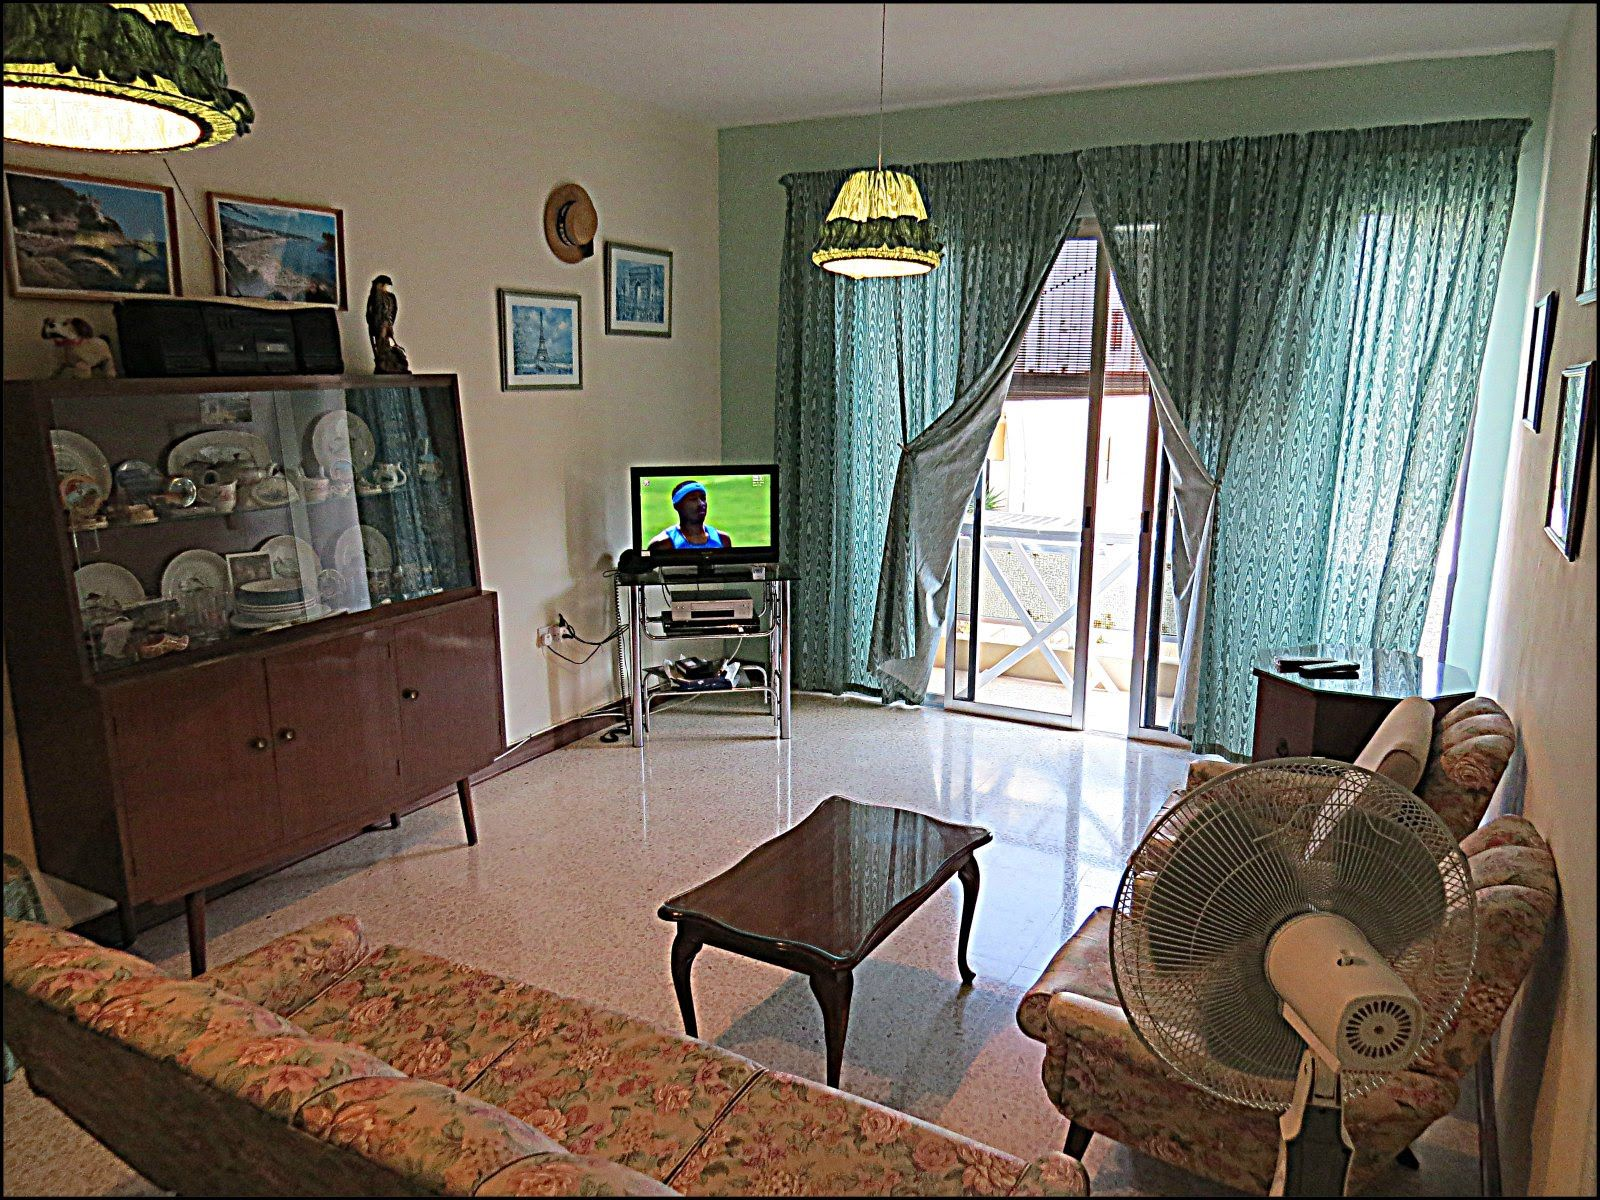 Malta Property For Sale | 3 Bedroom Apartment | Marsascala ...